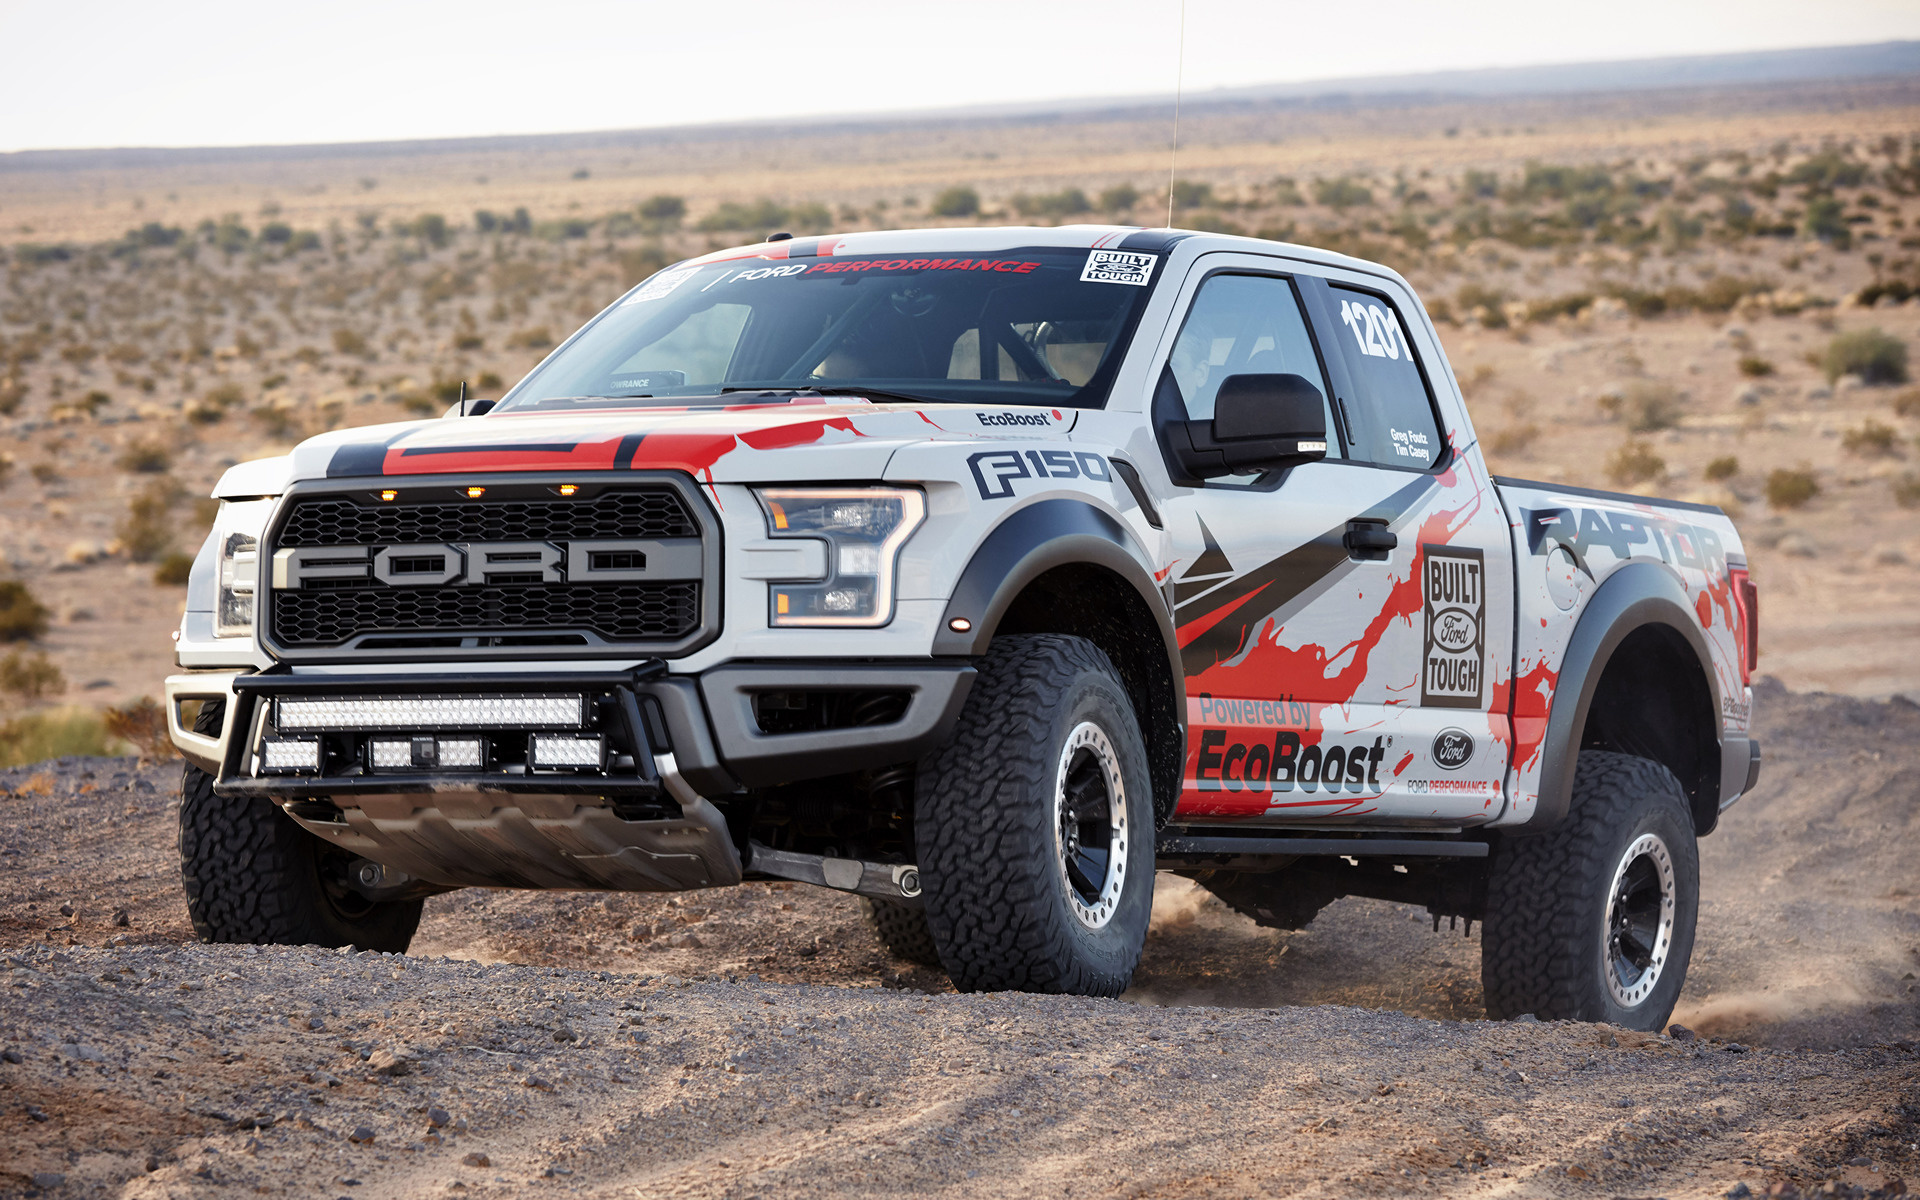 Ford F 150 Raptor Race Truck 2017 Wallpapers and HD Images 1920x1200